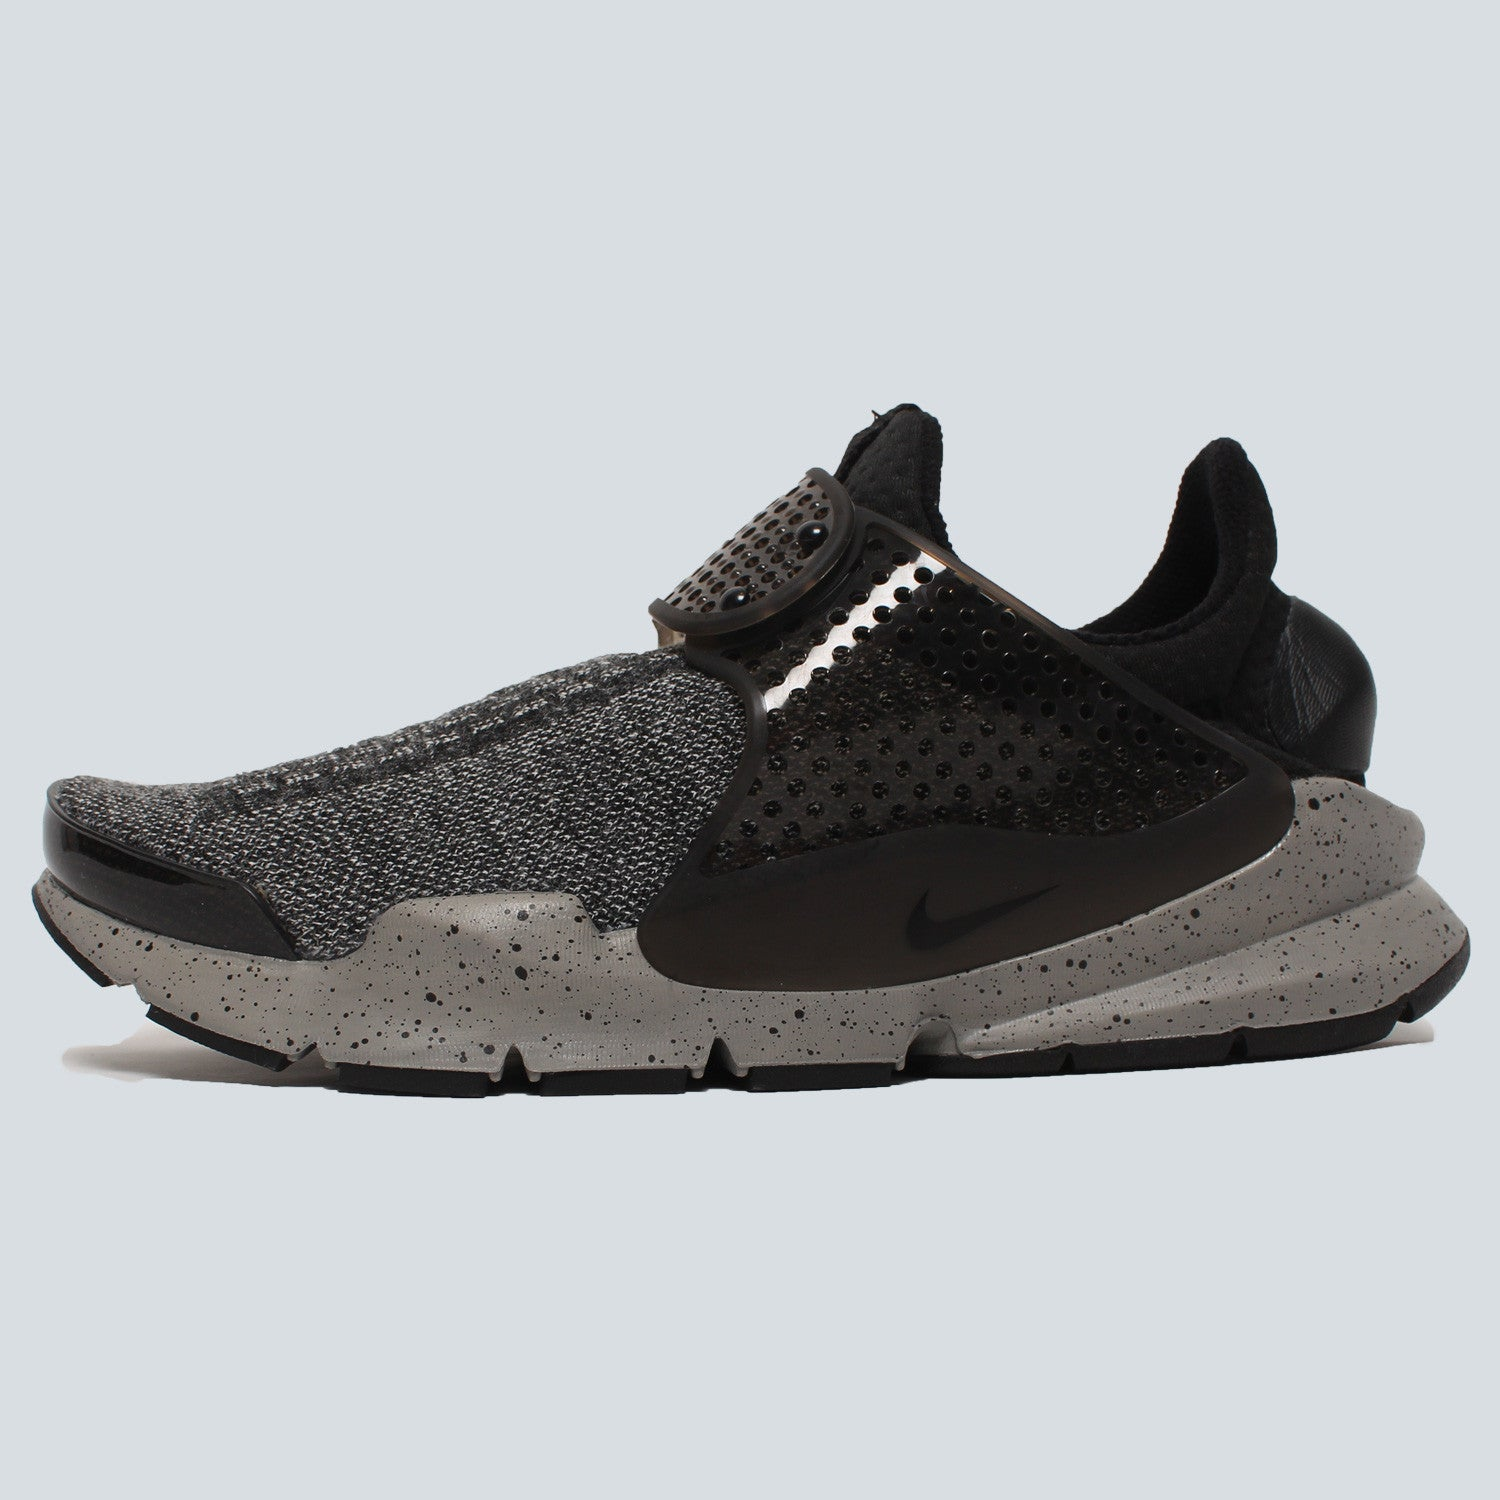 sports shoes c84a5 a273f Nike - Sock Dart SE Premium - Black/Dust White/University Red